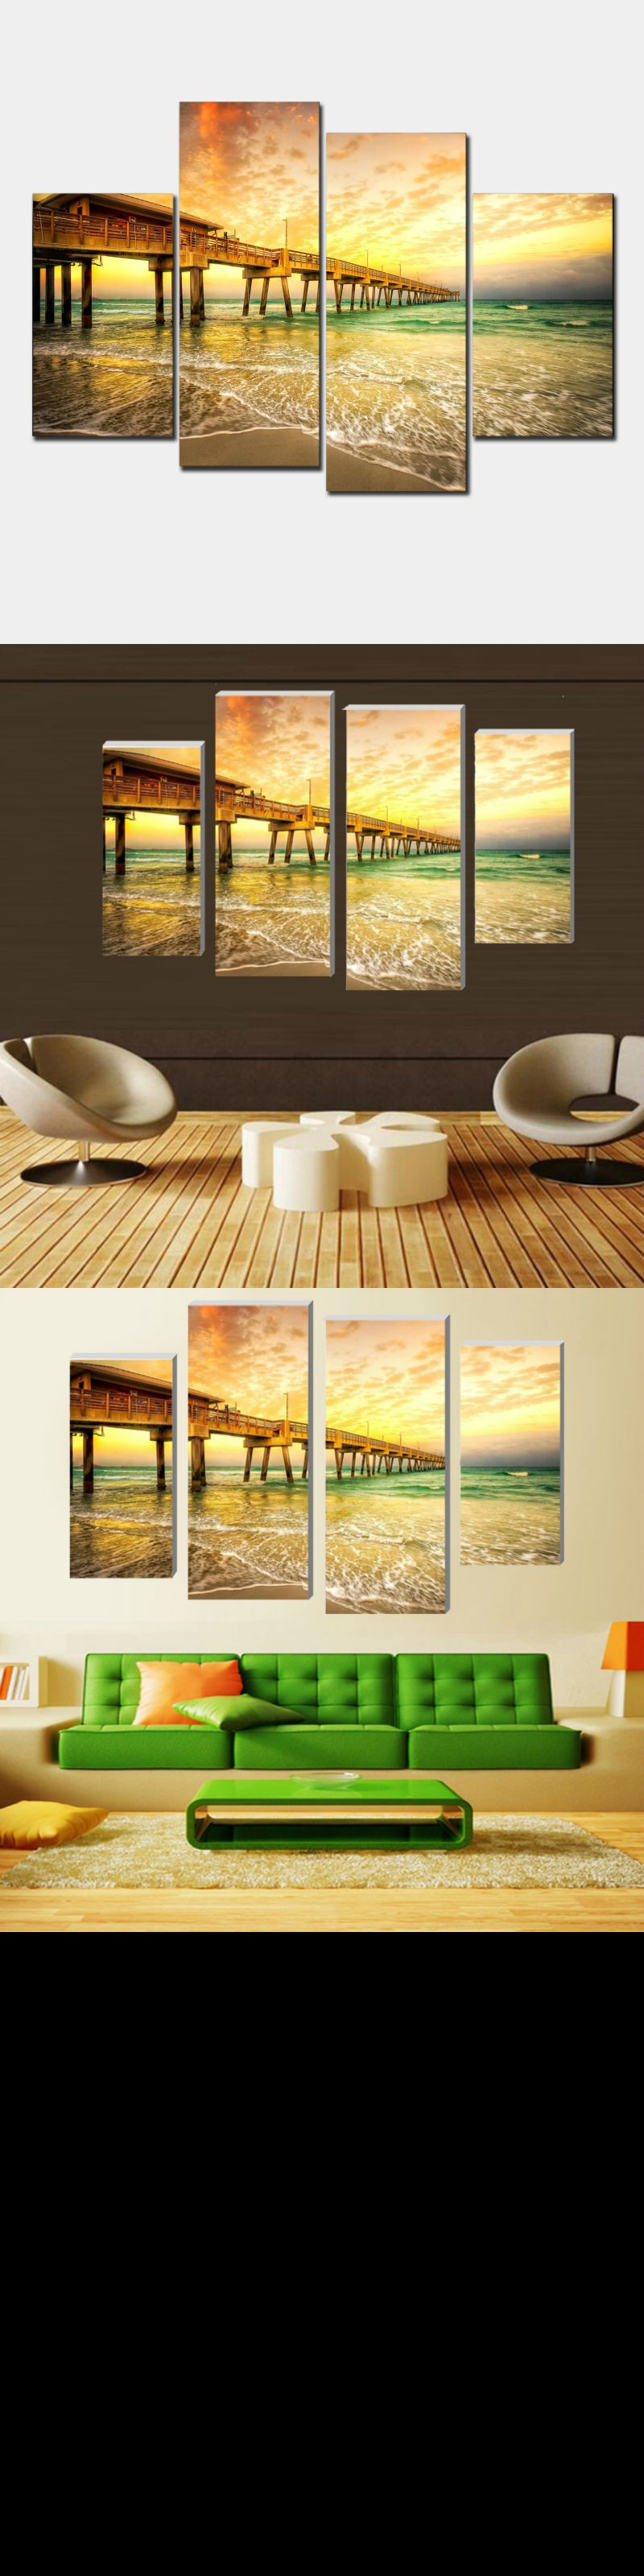 Modular pictures seaside pier wall art picture living room or